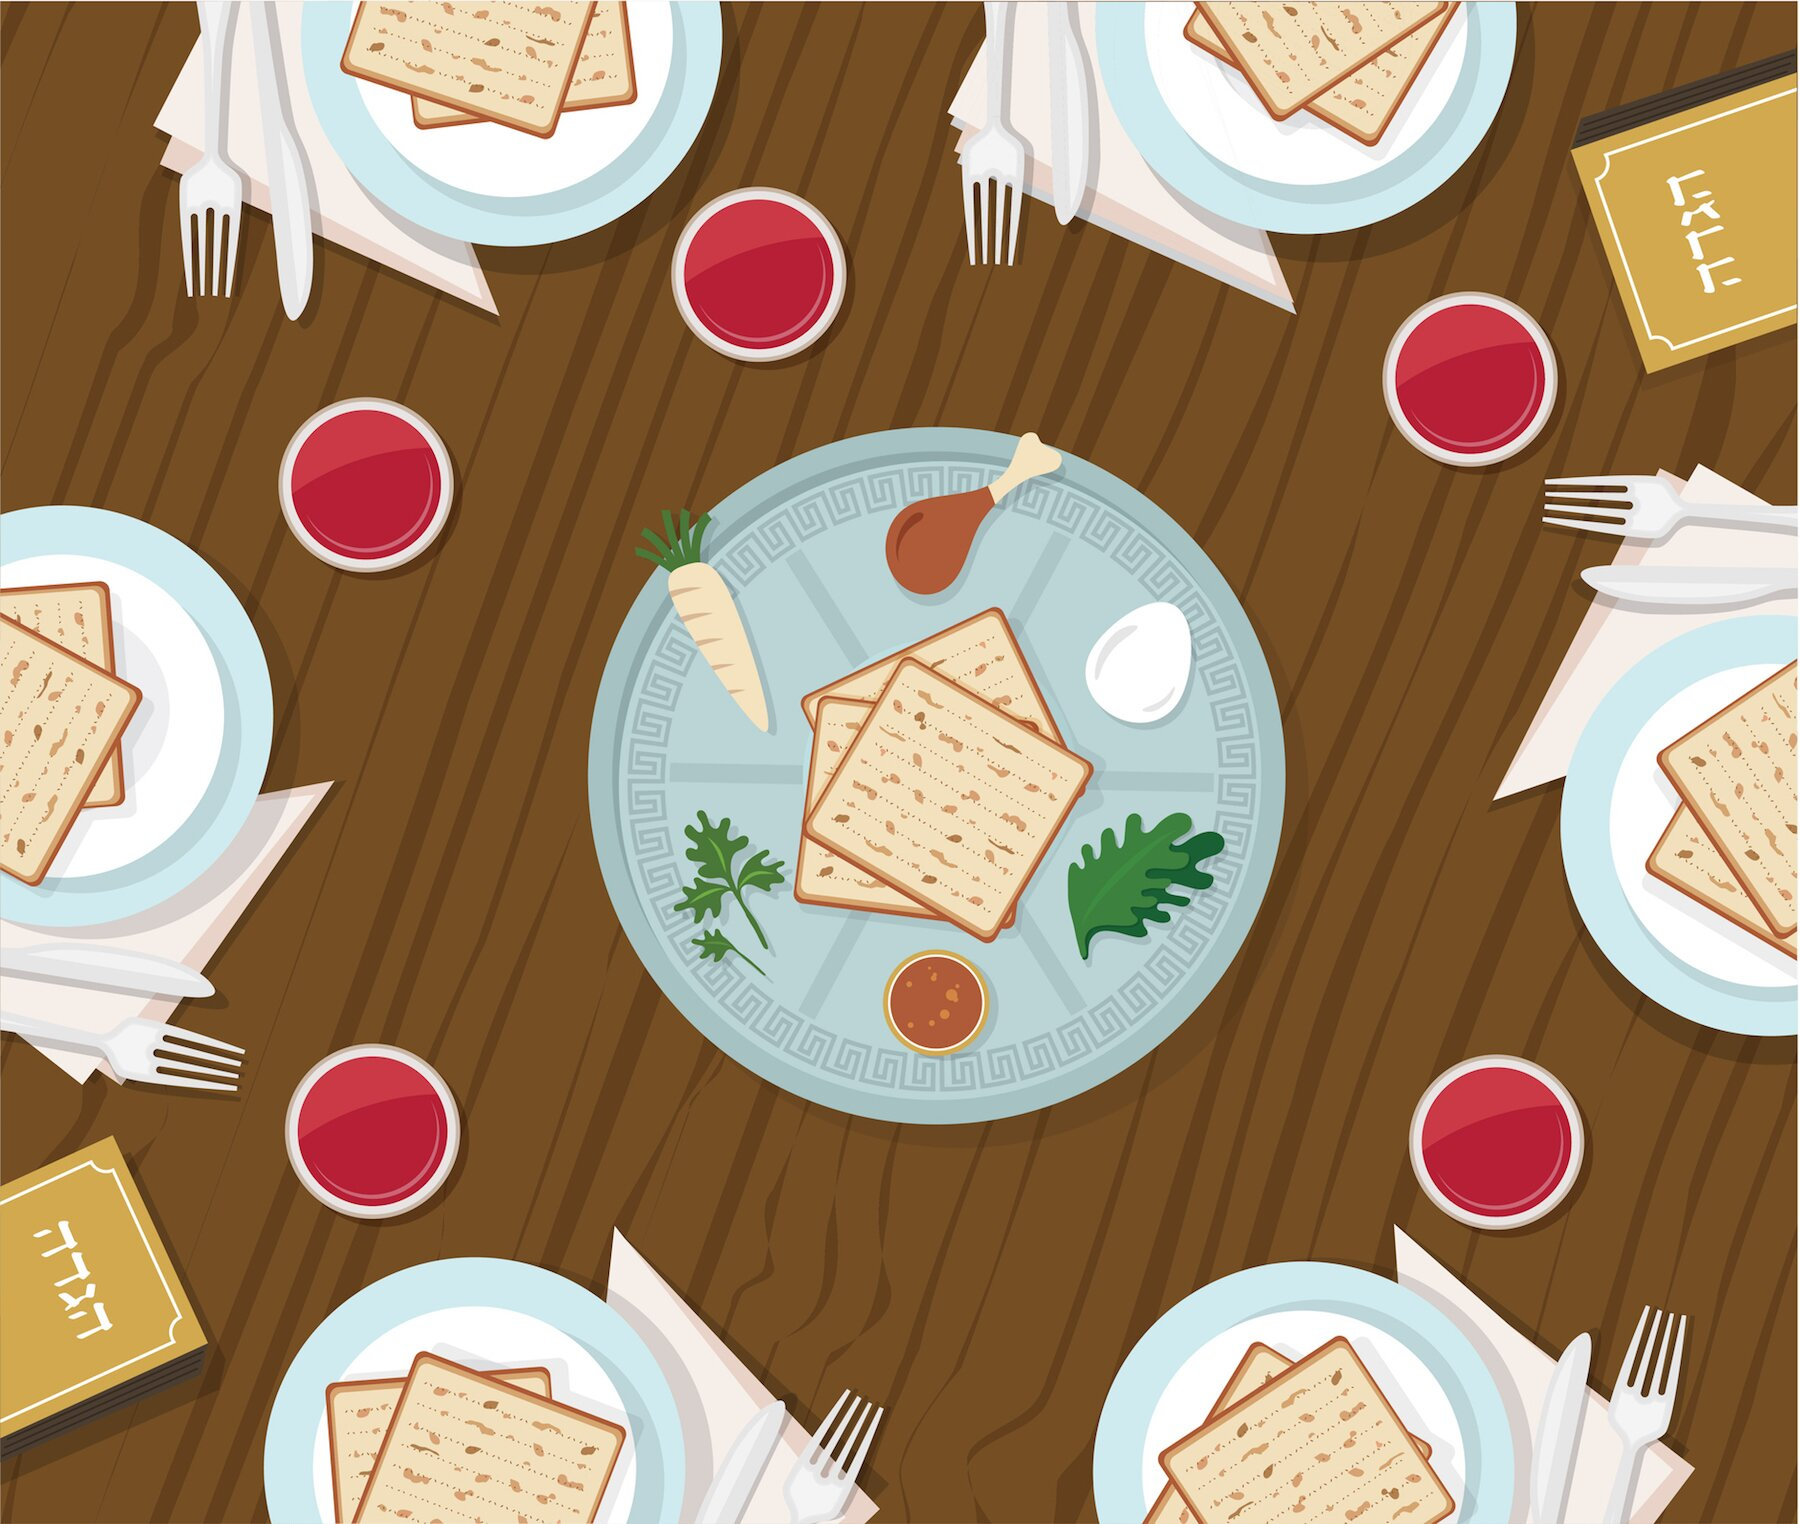 15 Modern Passover Recipes for Your Family's Seder